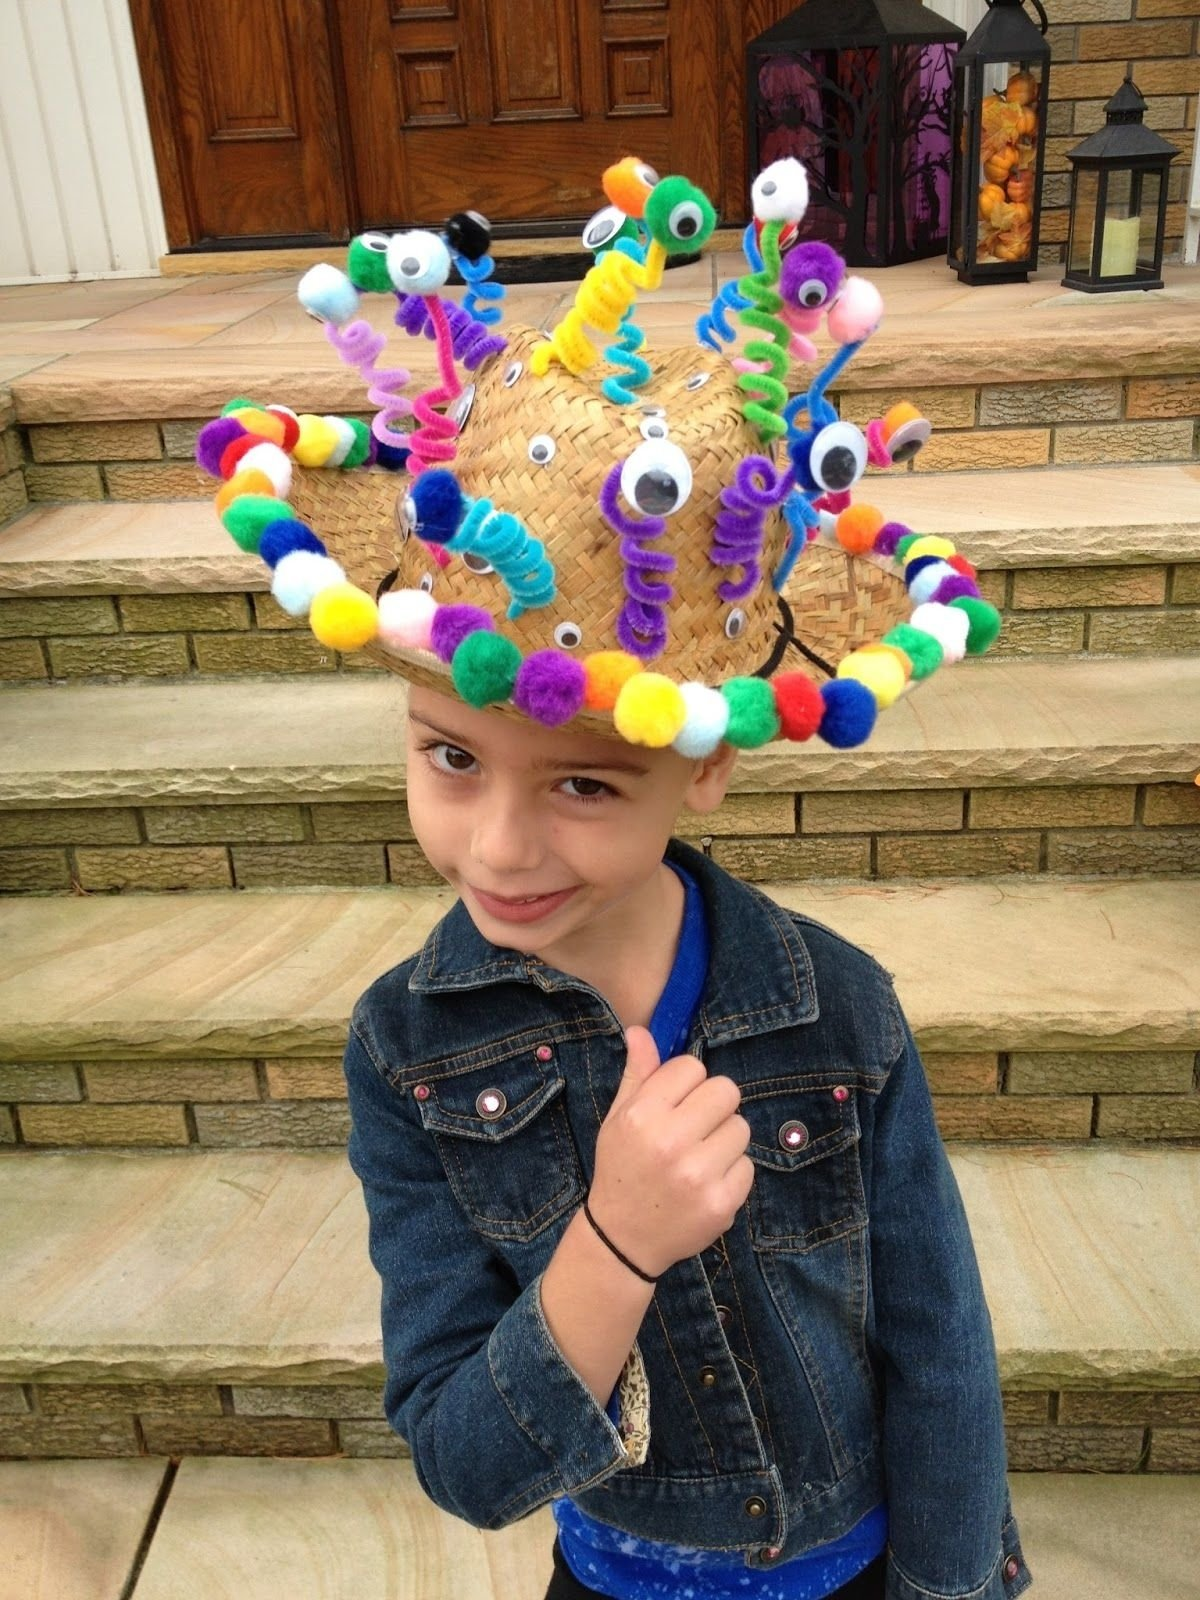 10 Great Crazy Hat Day Ideas For Kids diy inspo for cams crazy hat day school cameron would want to 1 2021